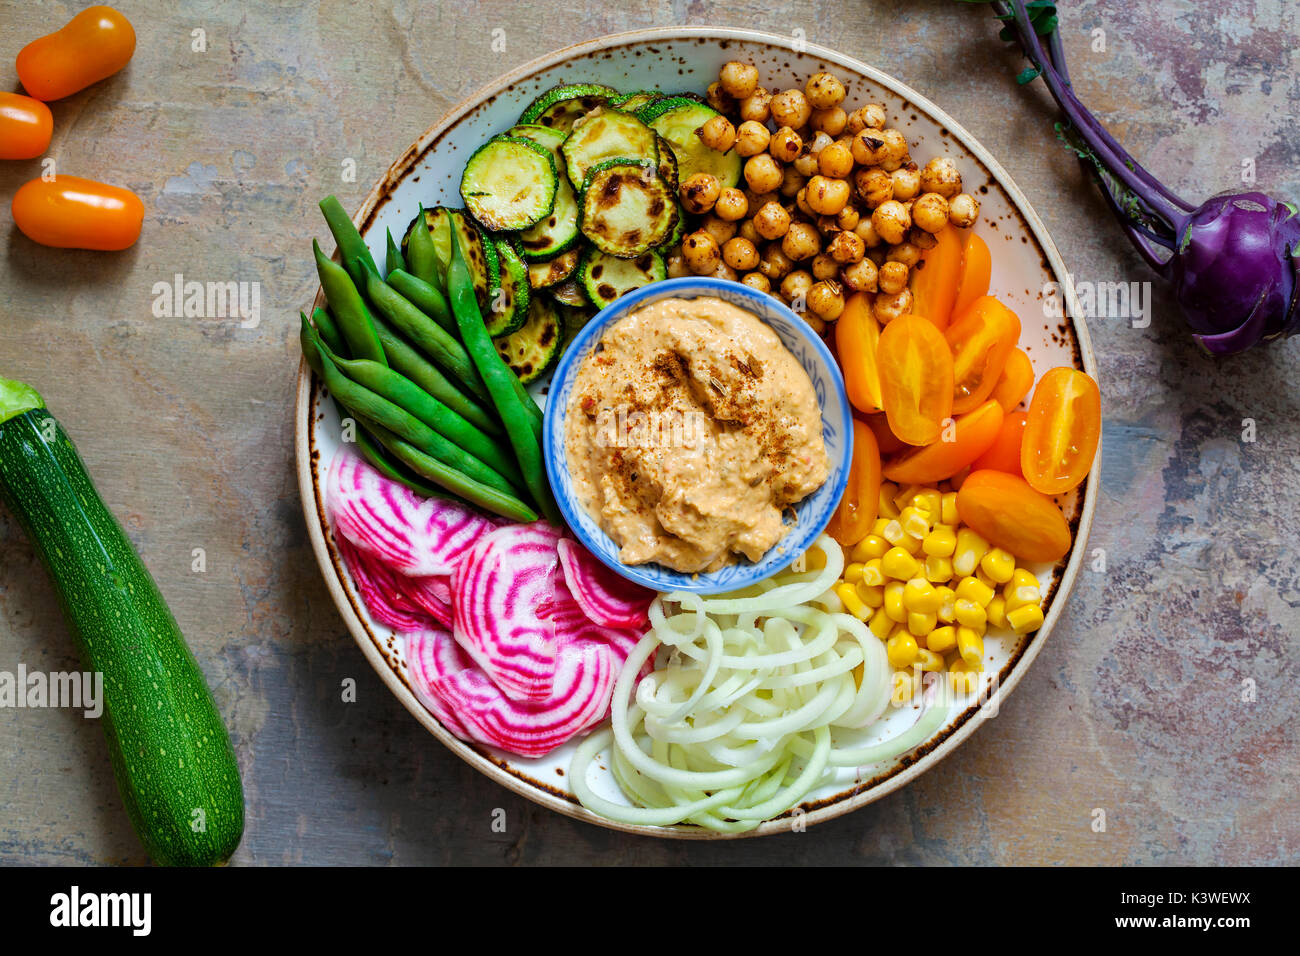 Vegan Buddha bowl with mixed vegetables - Stock Image